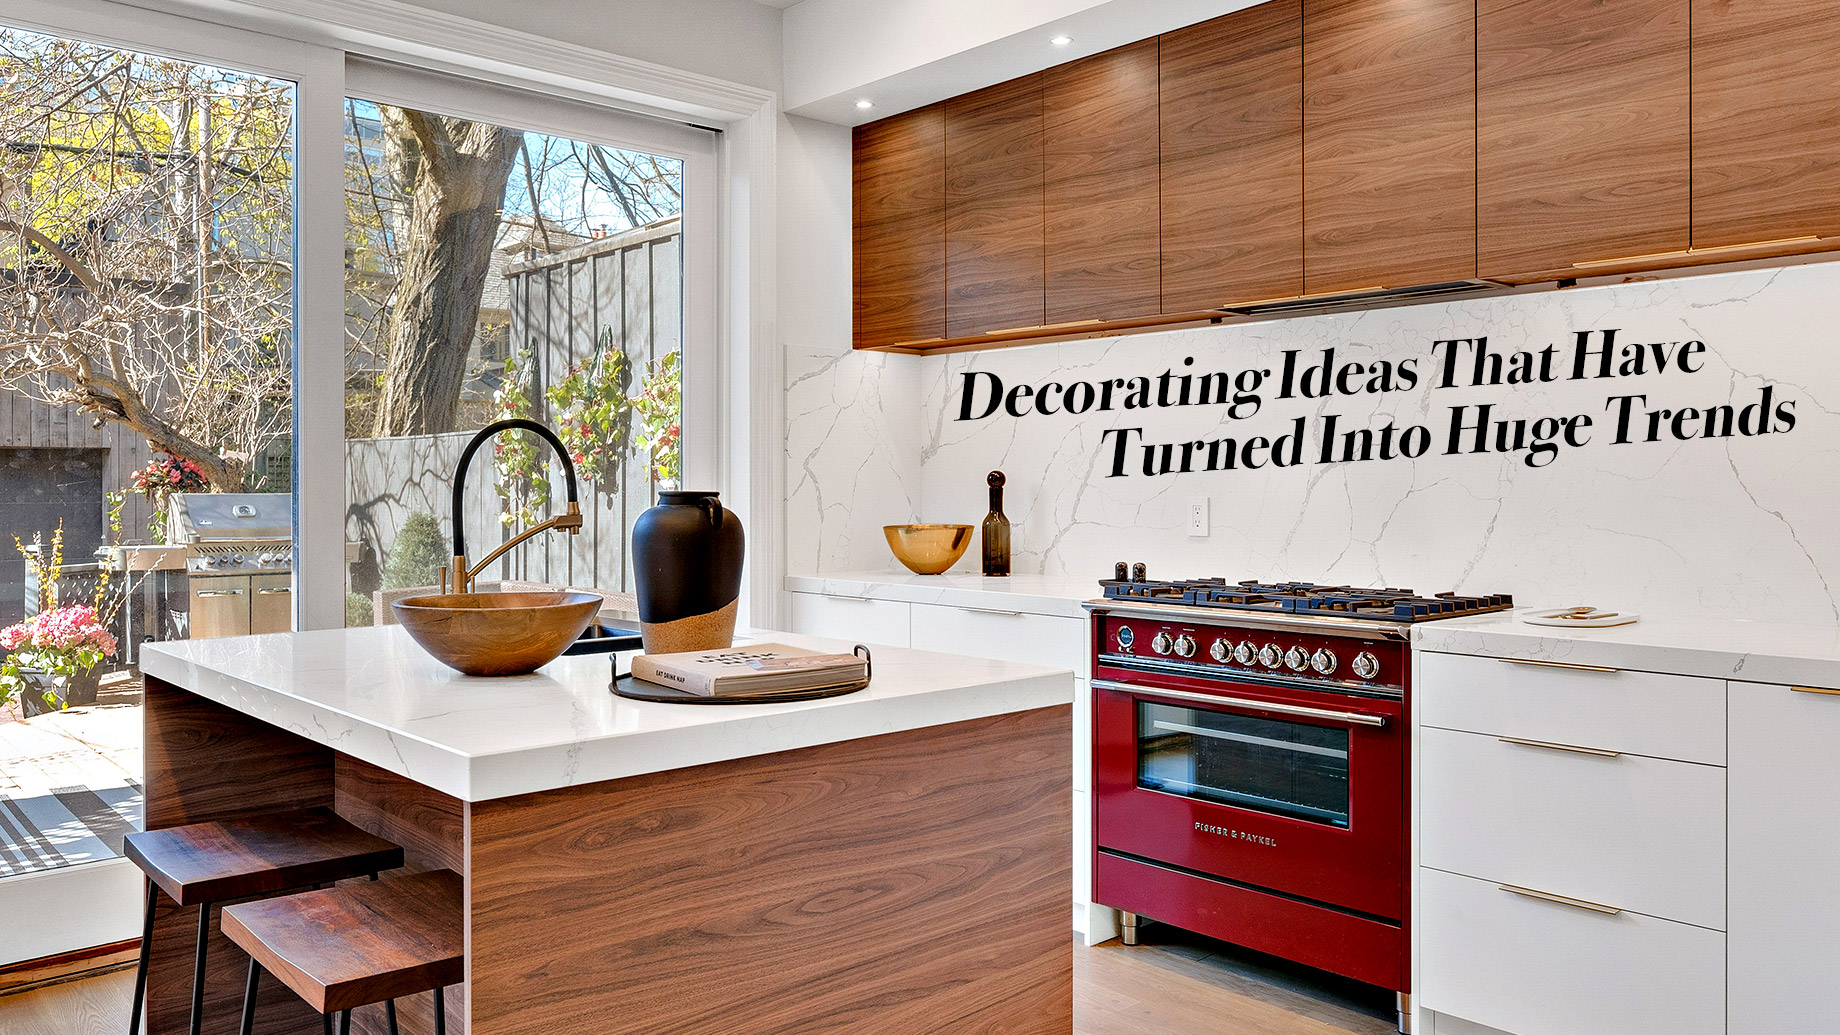 Decorating Ideas That Have Turned IDecorating Ideas That Have Turned Into Huge Trendsnto Huge Trends